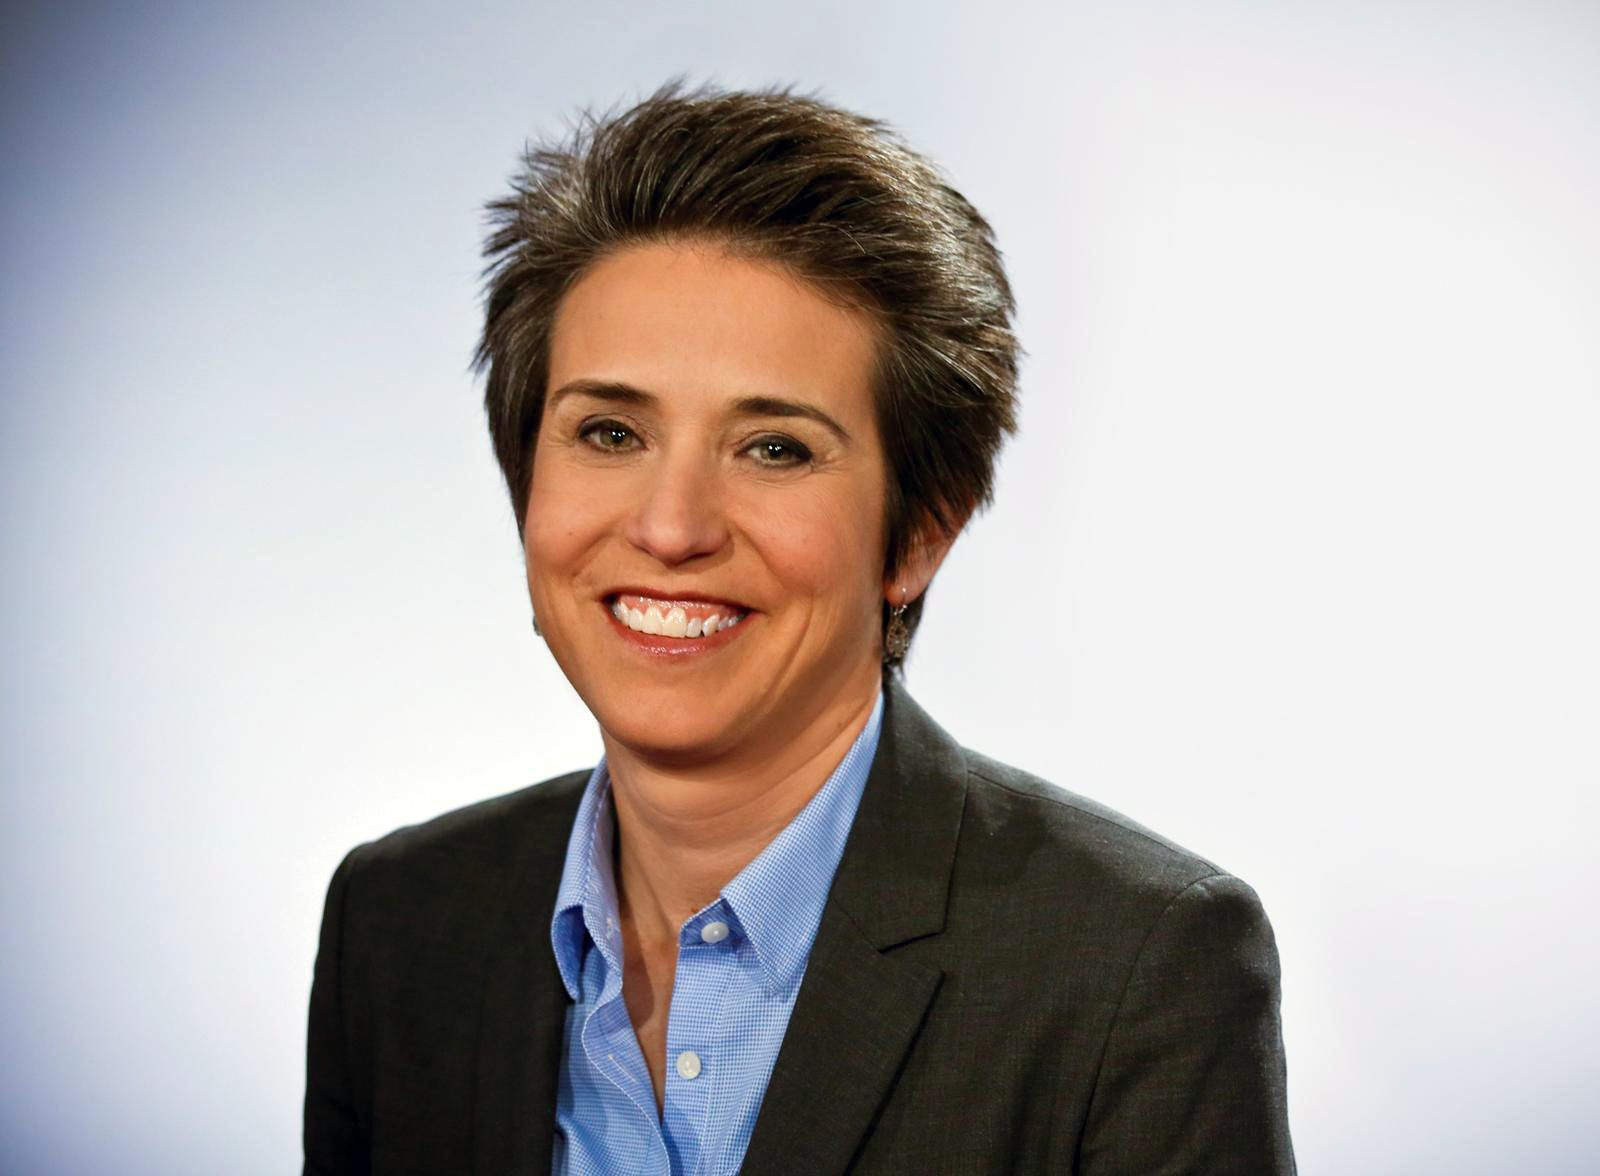 Amy Walter is national editor of the non-partisan Cook Political Report and a frequent on-air analyst.